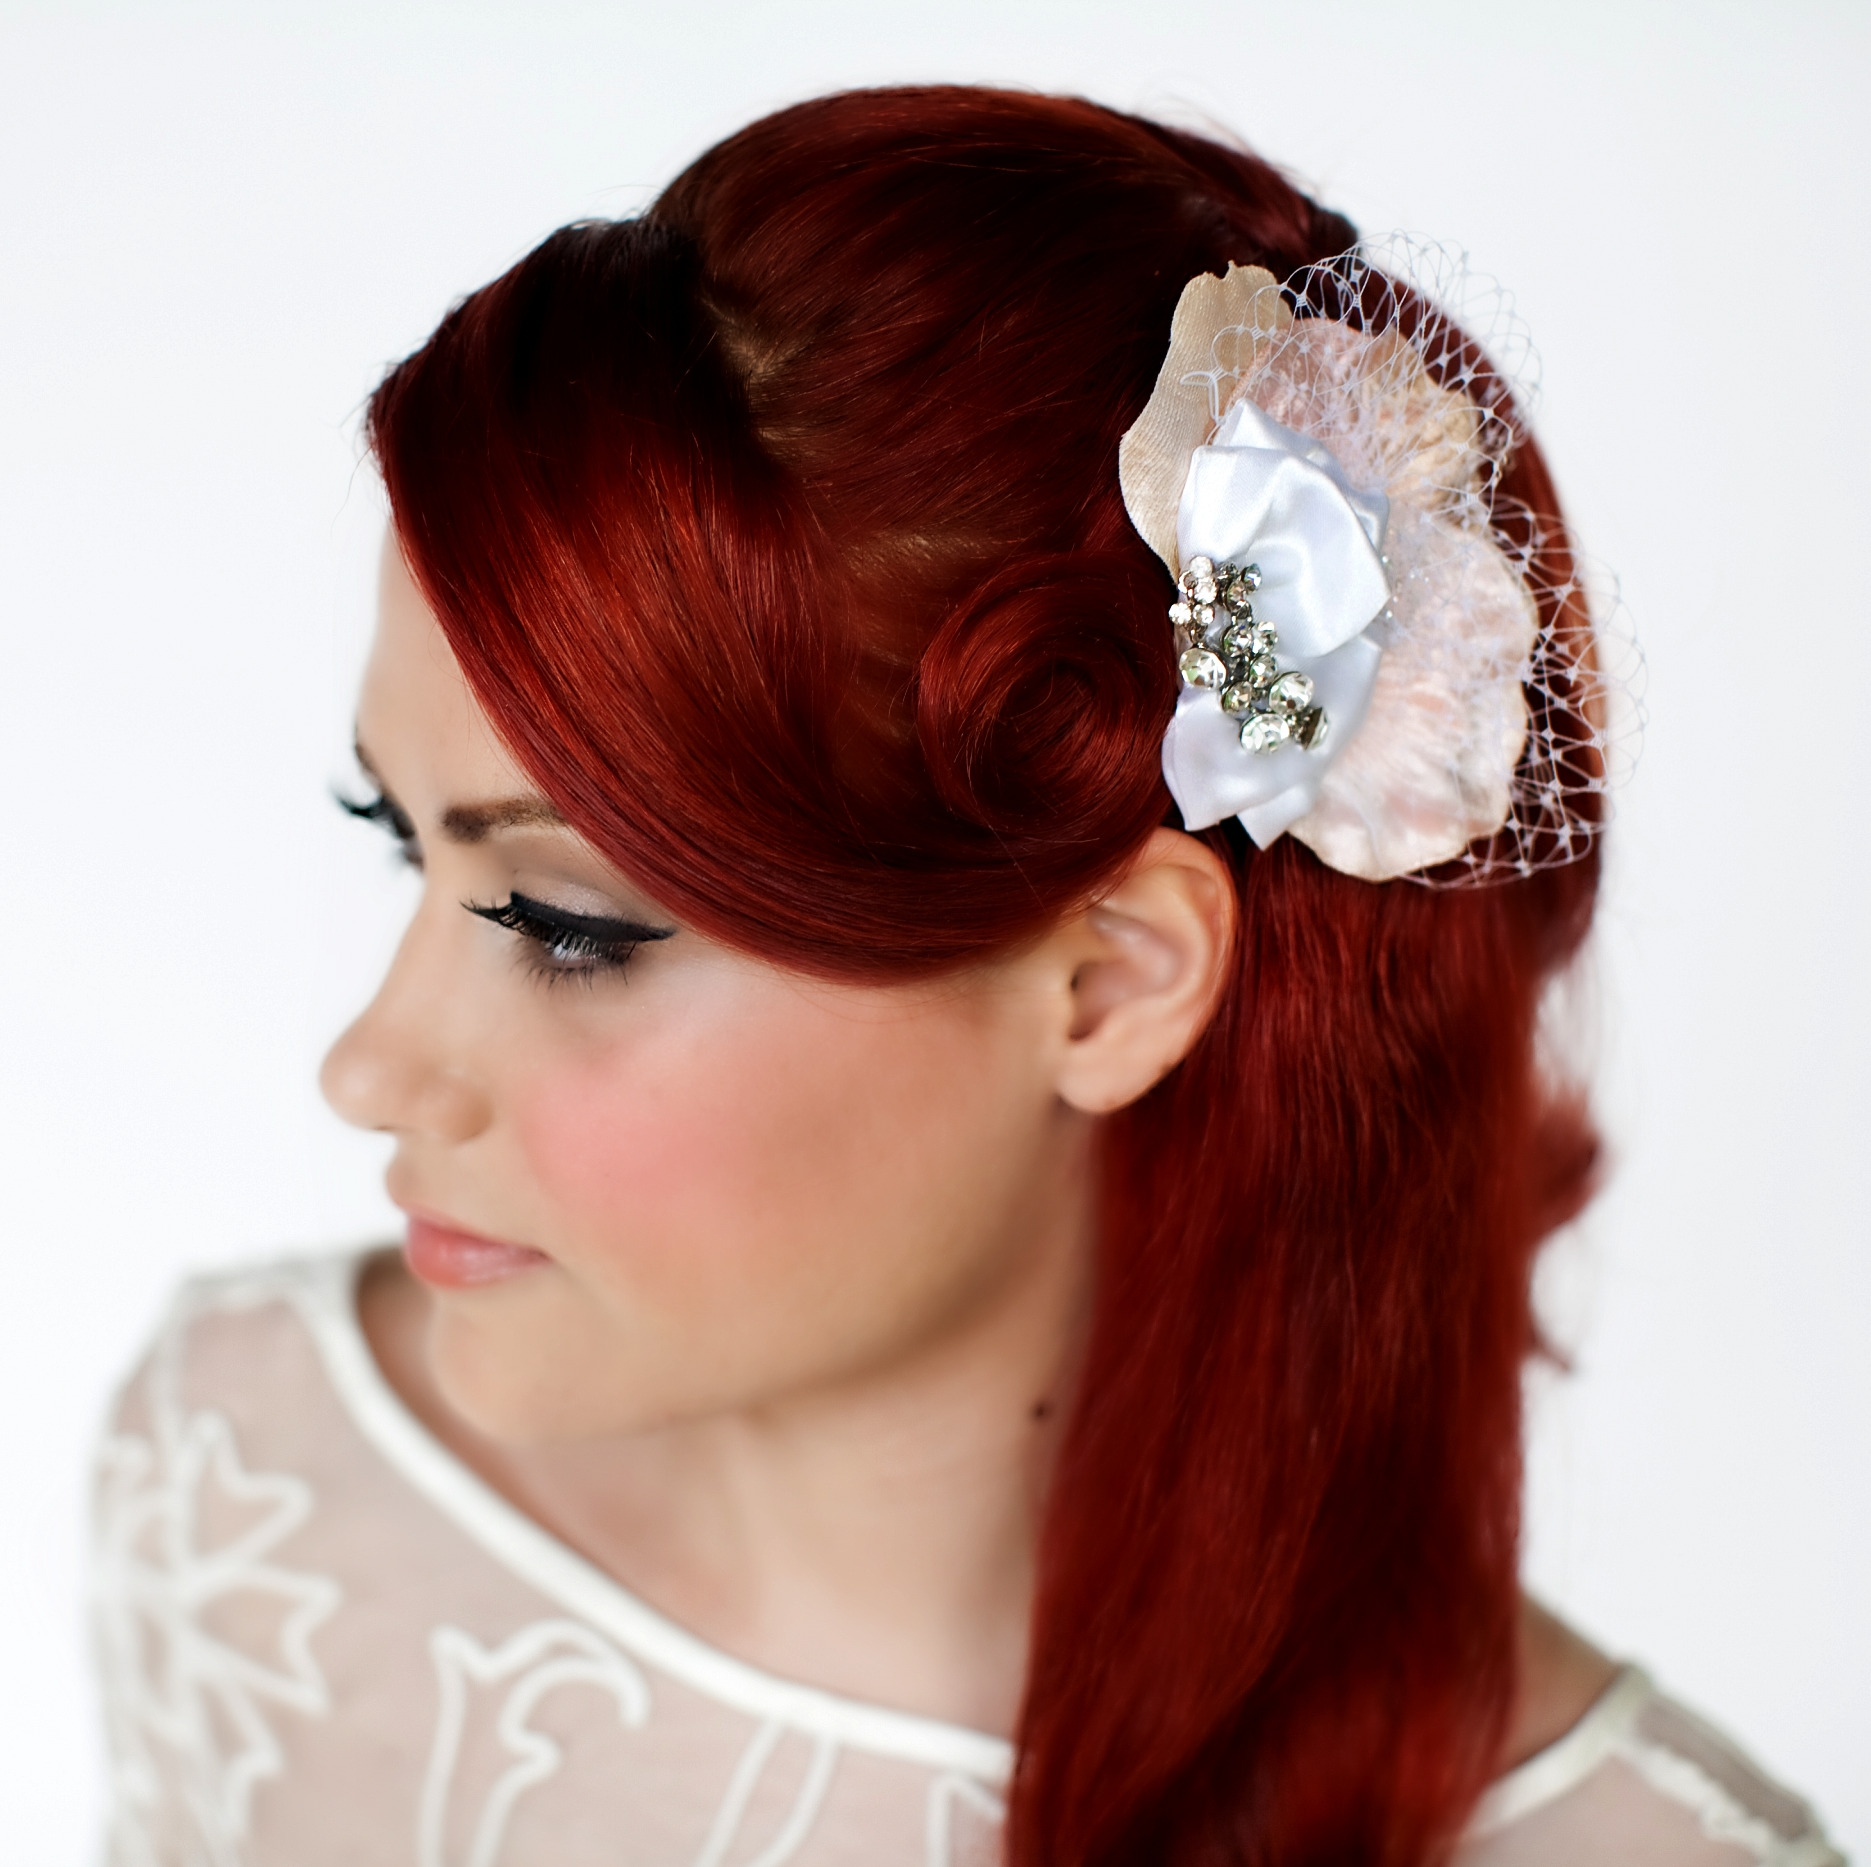 Vintage-inspired-bridal-hair-accessory-retro-bridal-style-rose-pink-white-satin-tulle-netting-rhinestone-brooch.original